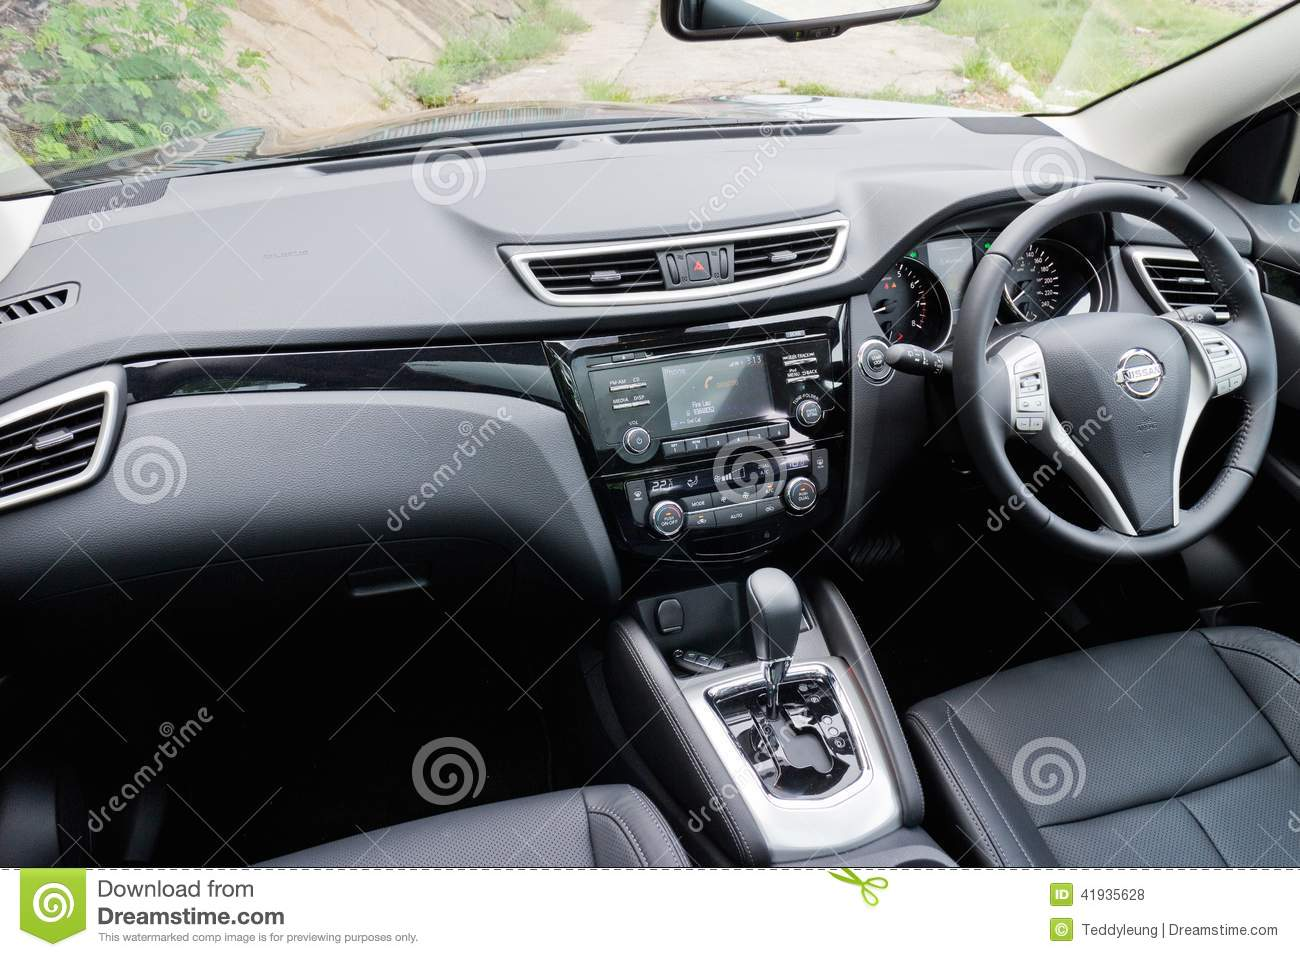 Mod le de l 39 int rieur 2014 de nissan qashqai photo stock for Interieur qashqai 2014